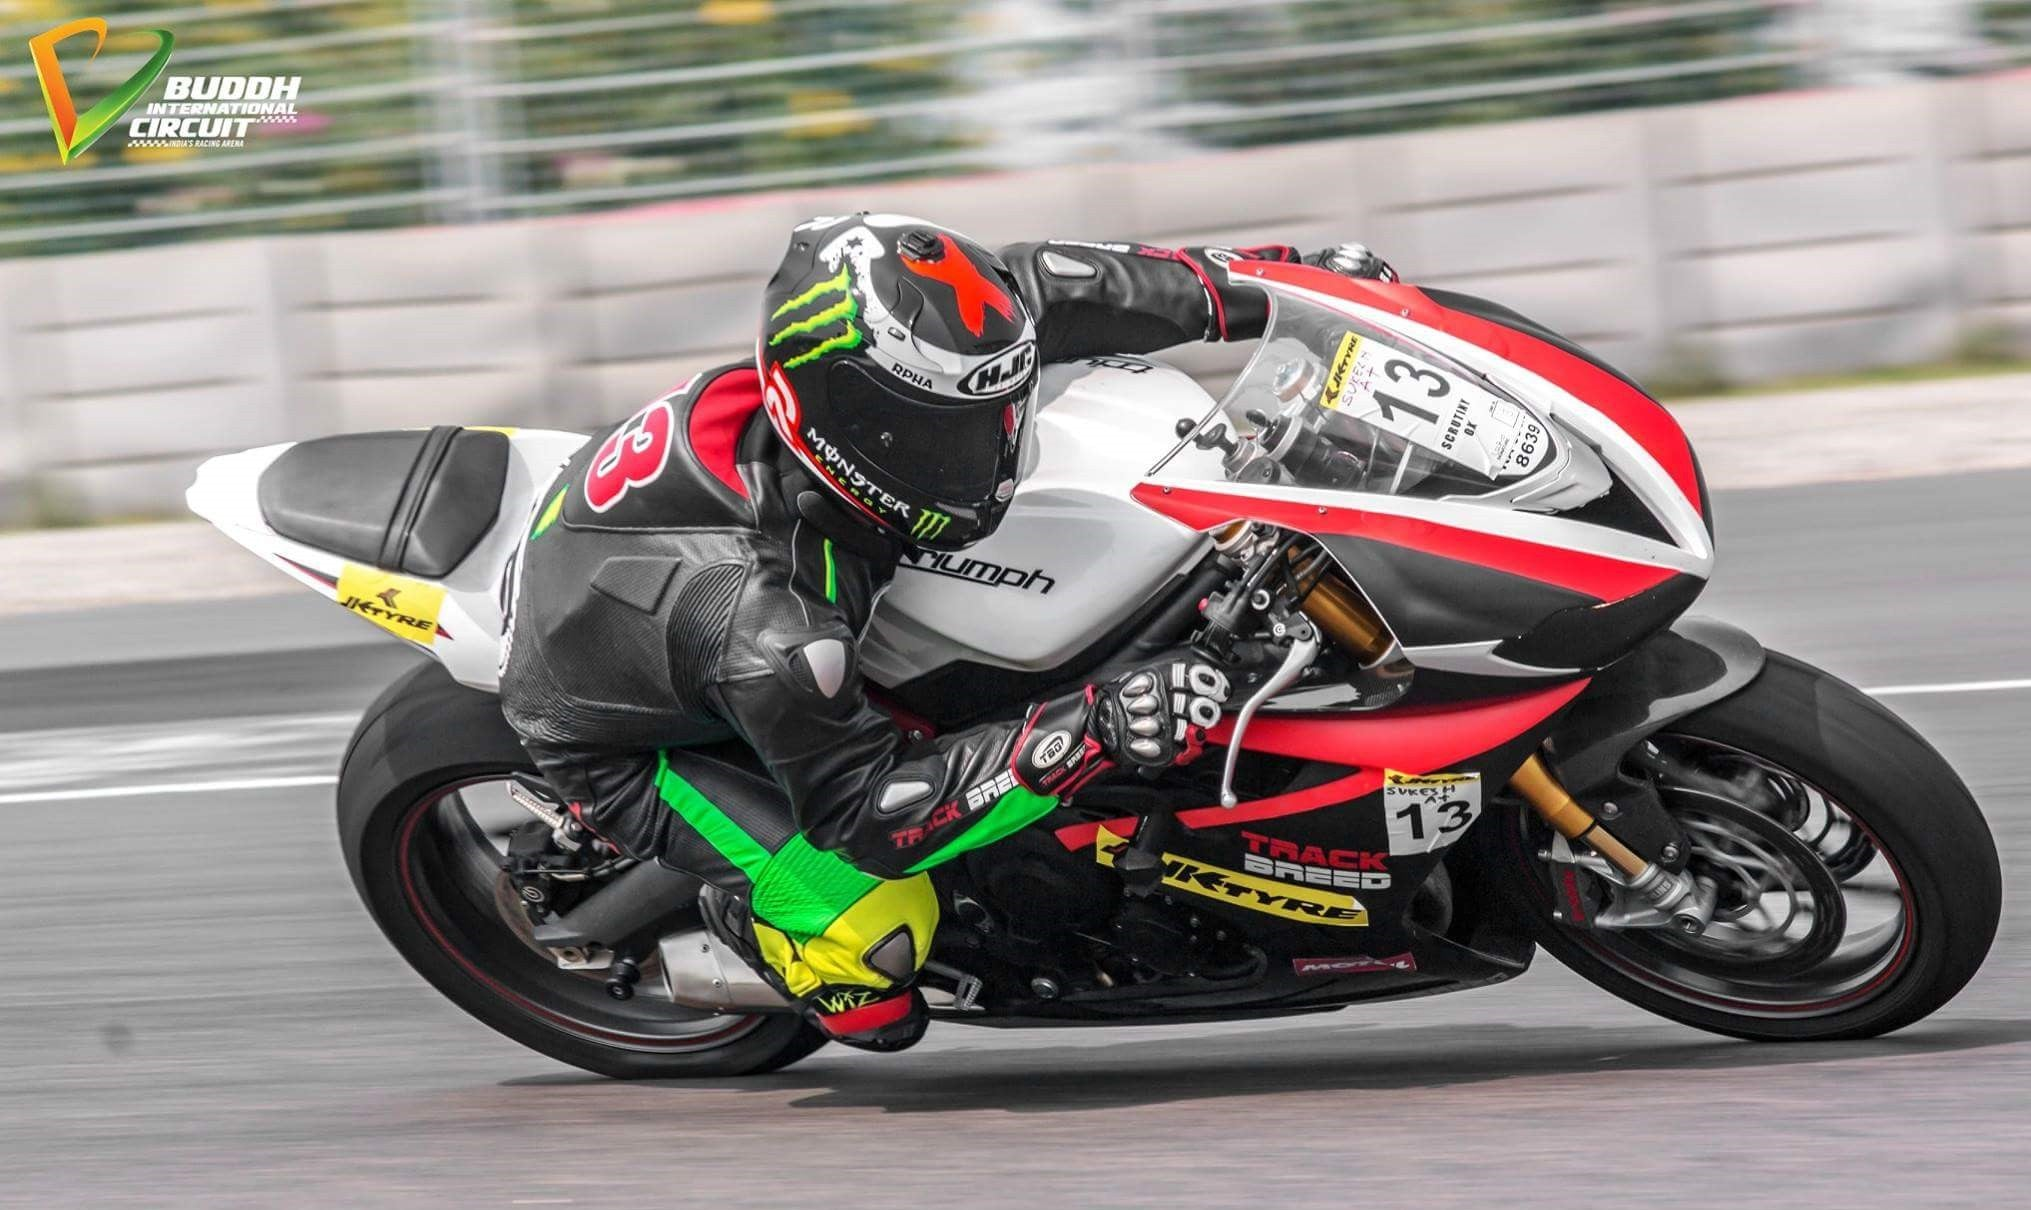 JK Tyre Superbike 600cc race on Triumph Daytona 675R at Buddh International Circuit, Delhi, India - 2015